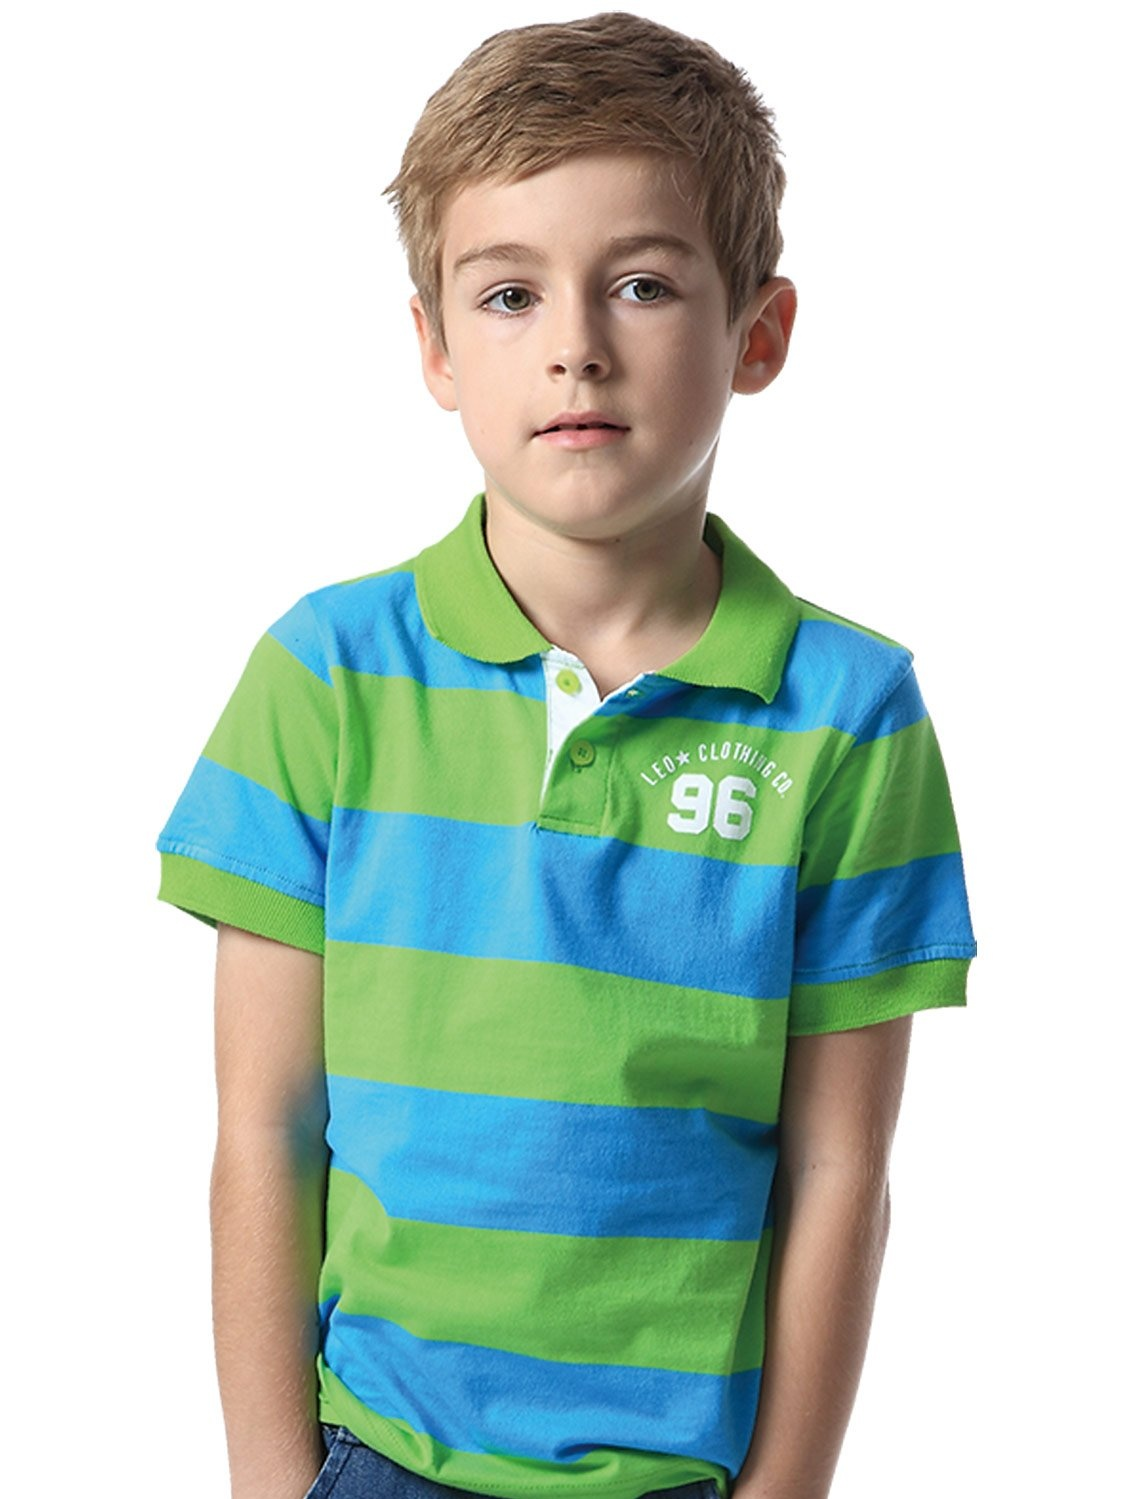 Leo&Lily Big Boys' Kids' Cotton Jersey Stripe Polo Shirts T-Shirts